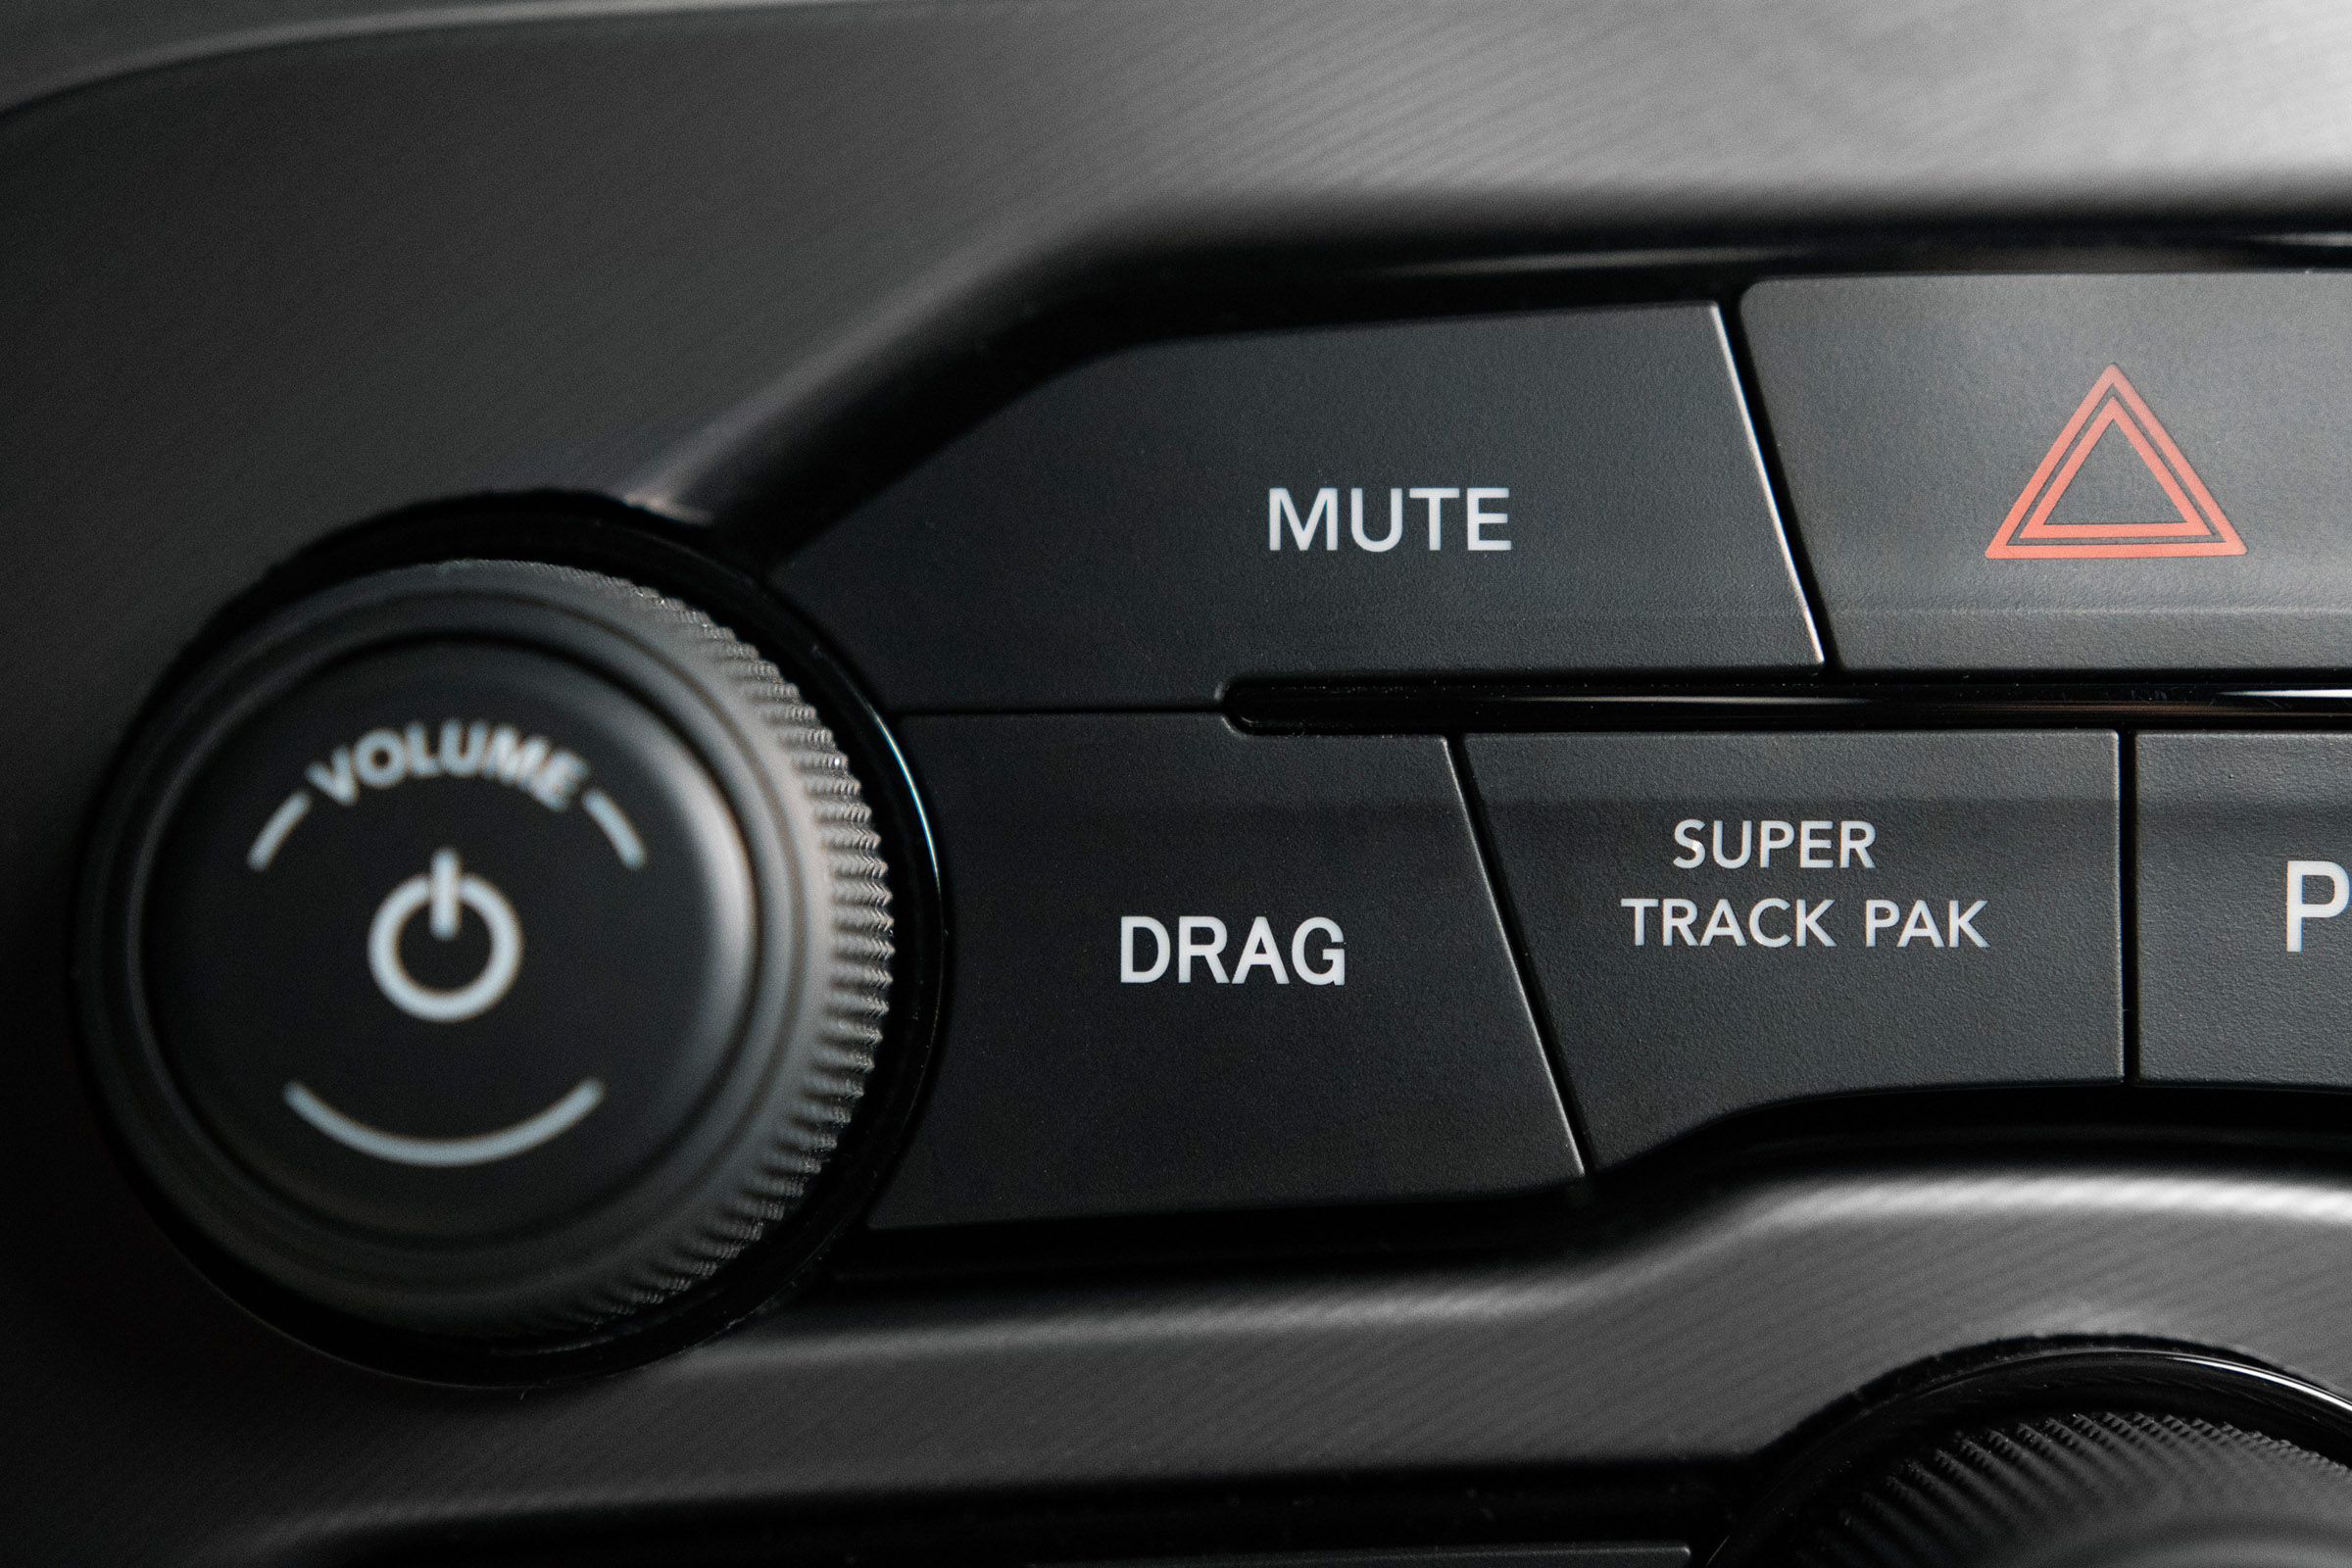 2019 Dodge Challenger R/T Scat Pack 1320 drag mode button